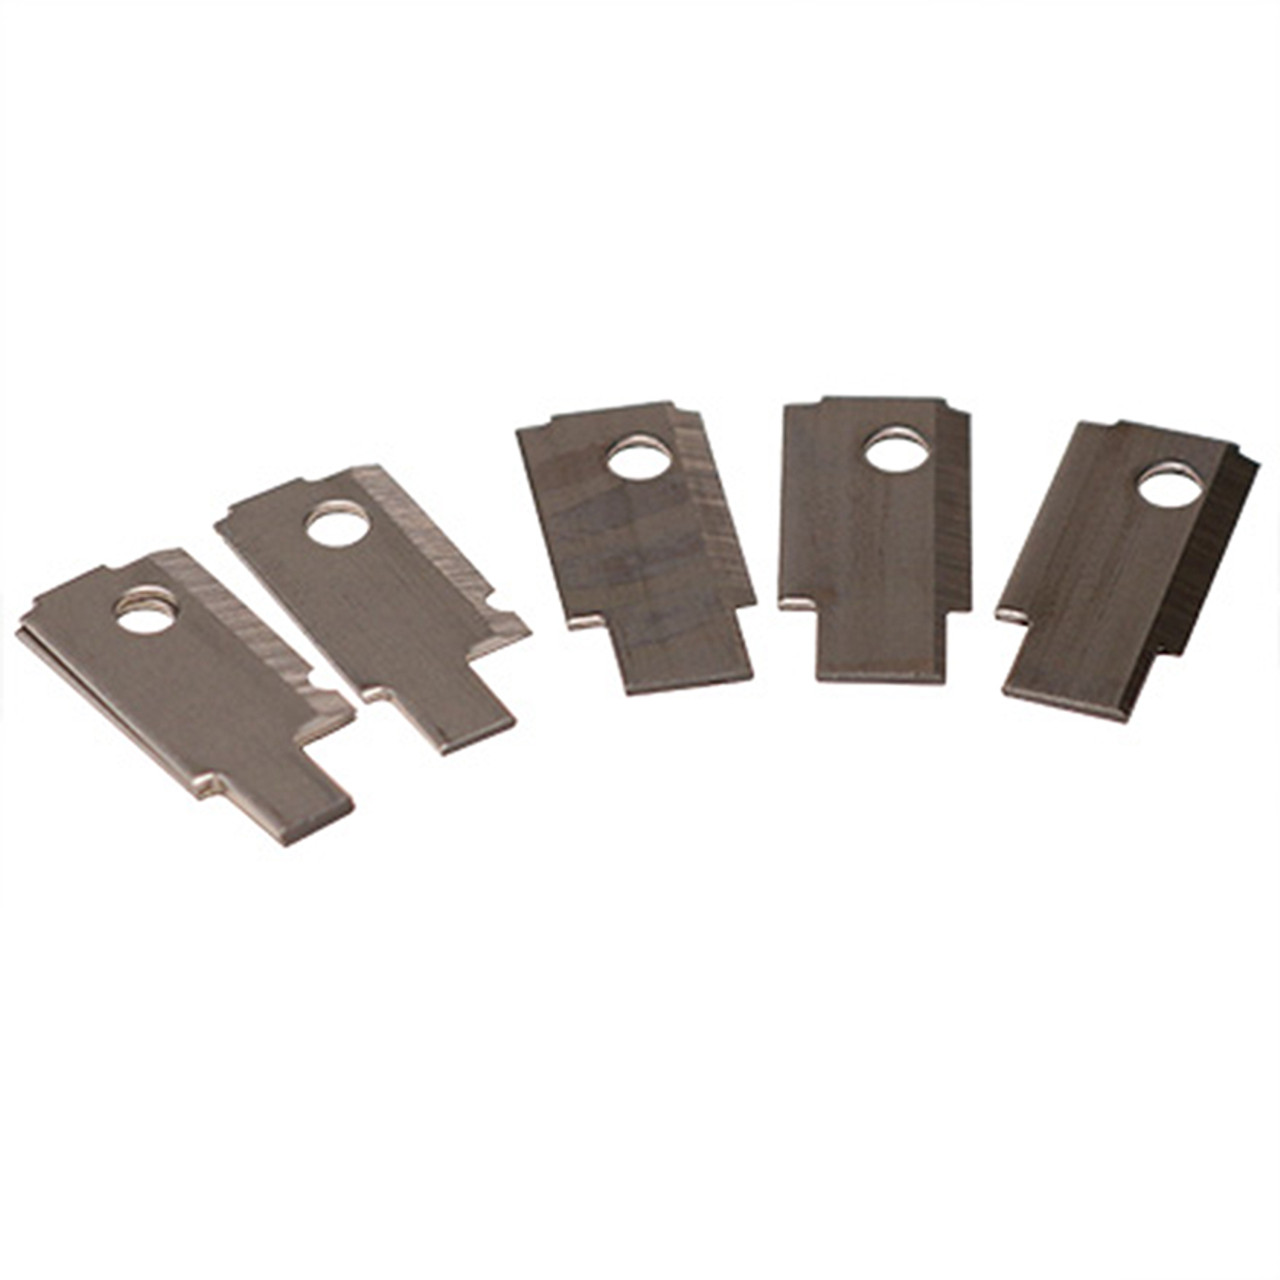 InstallMates™ Coax Cable Rotary Stripper - Replacement Blades - 6 Pack